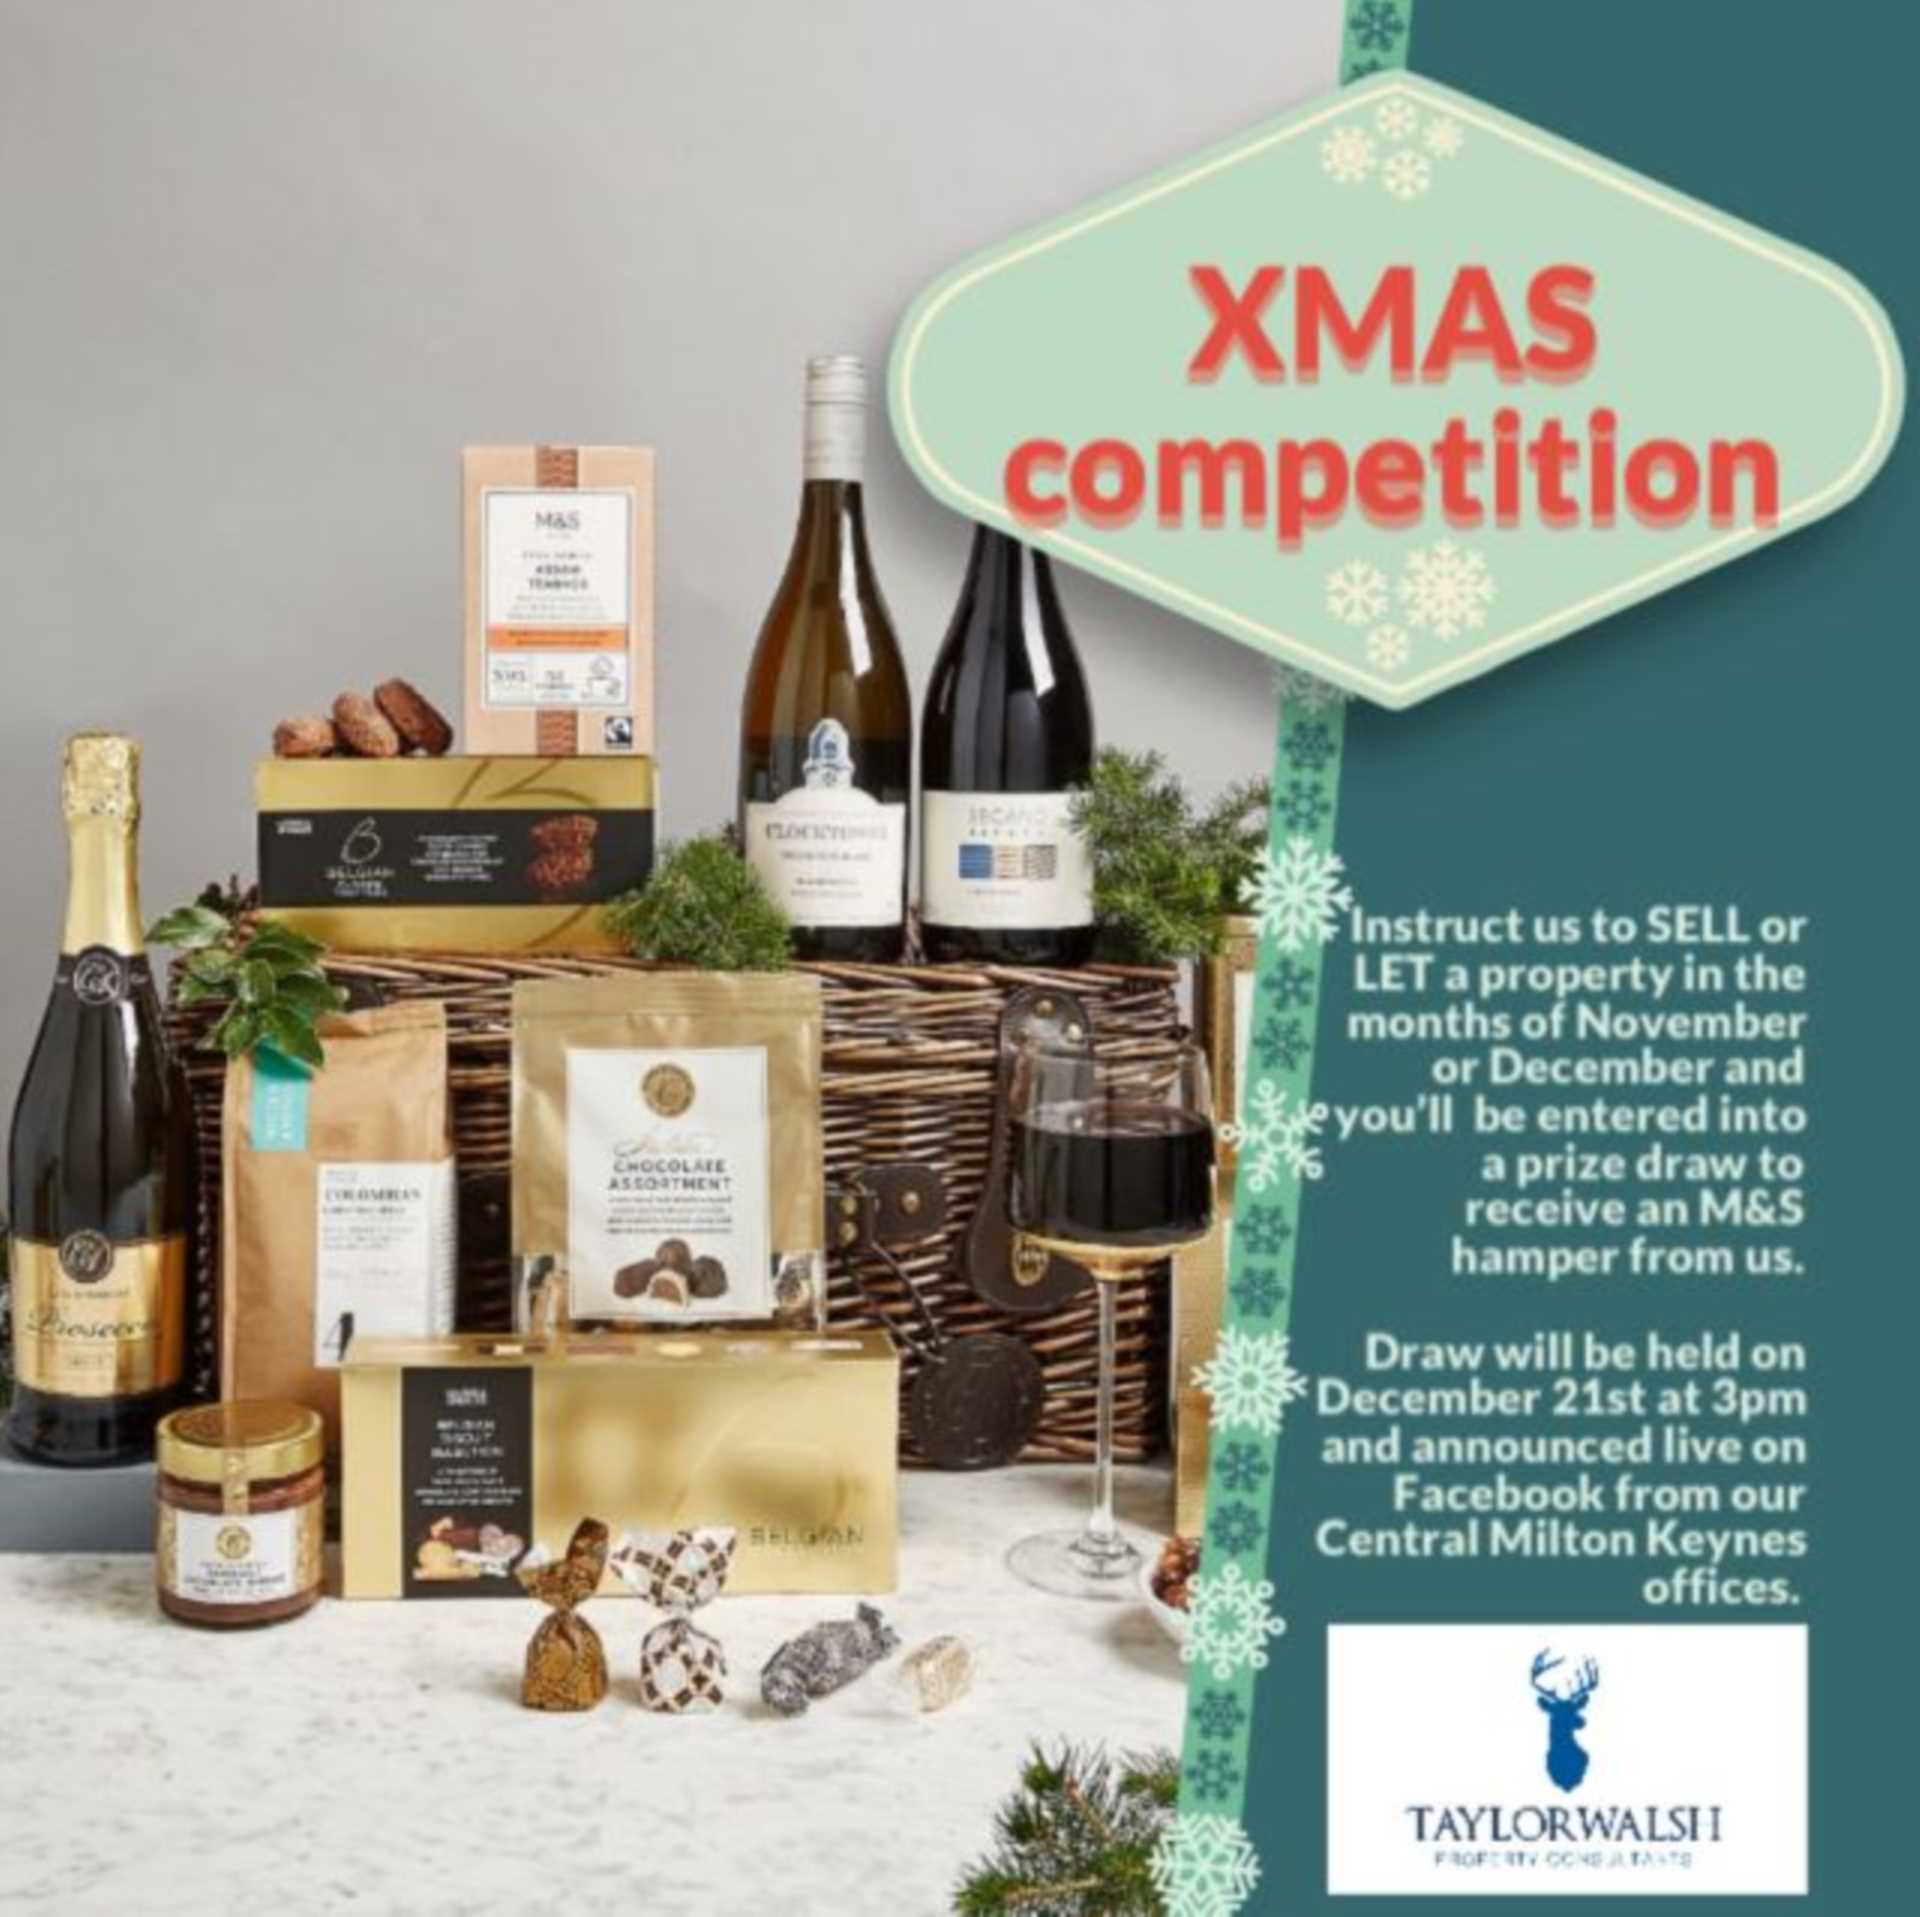 XMAS Competition